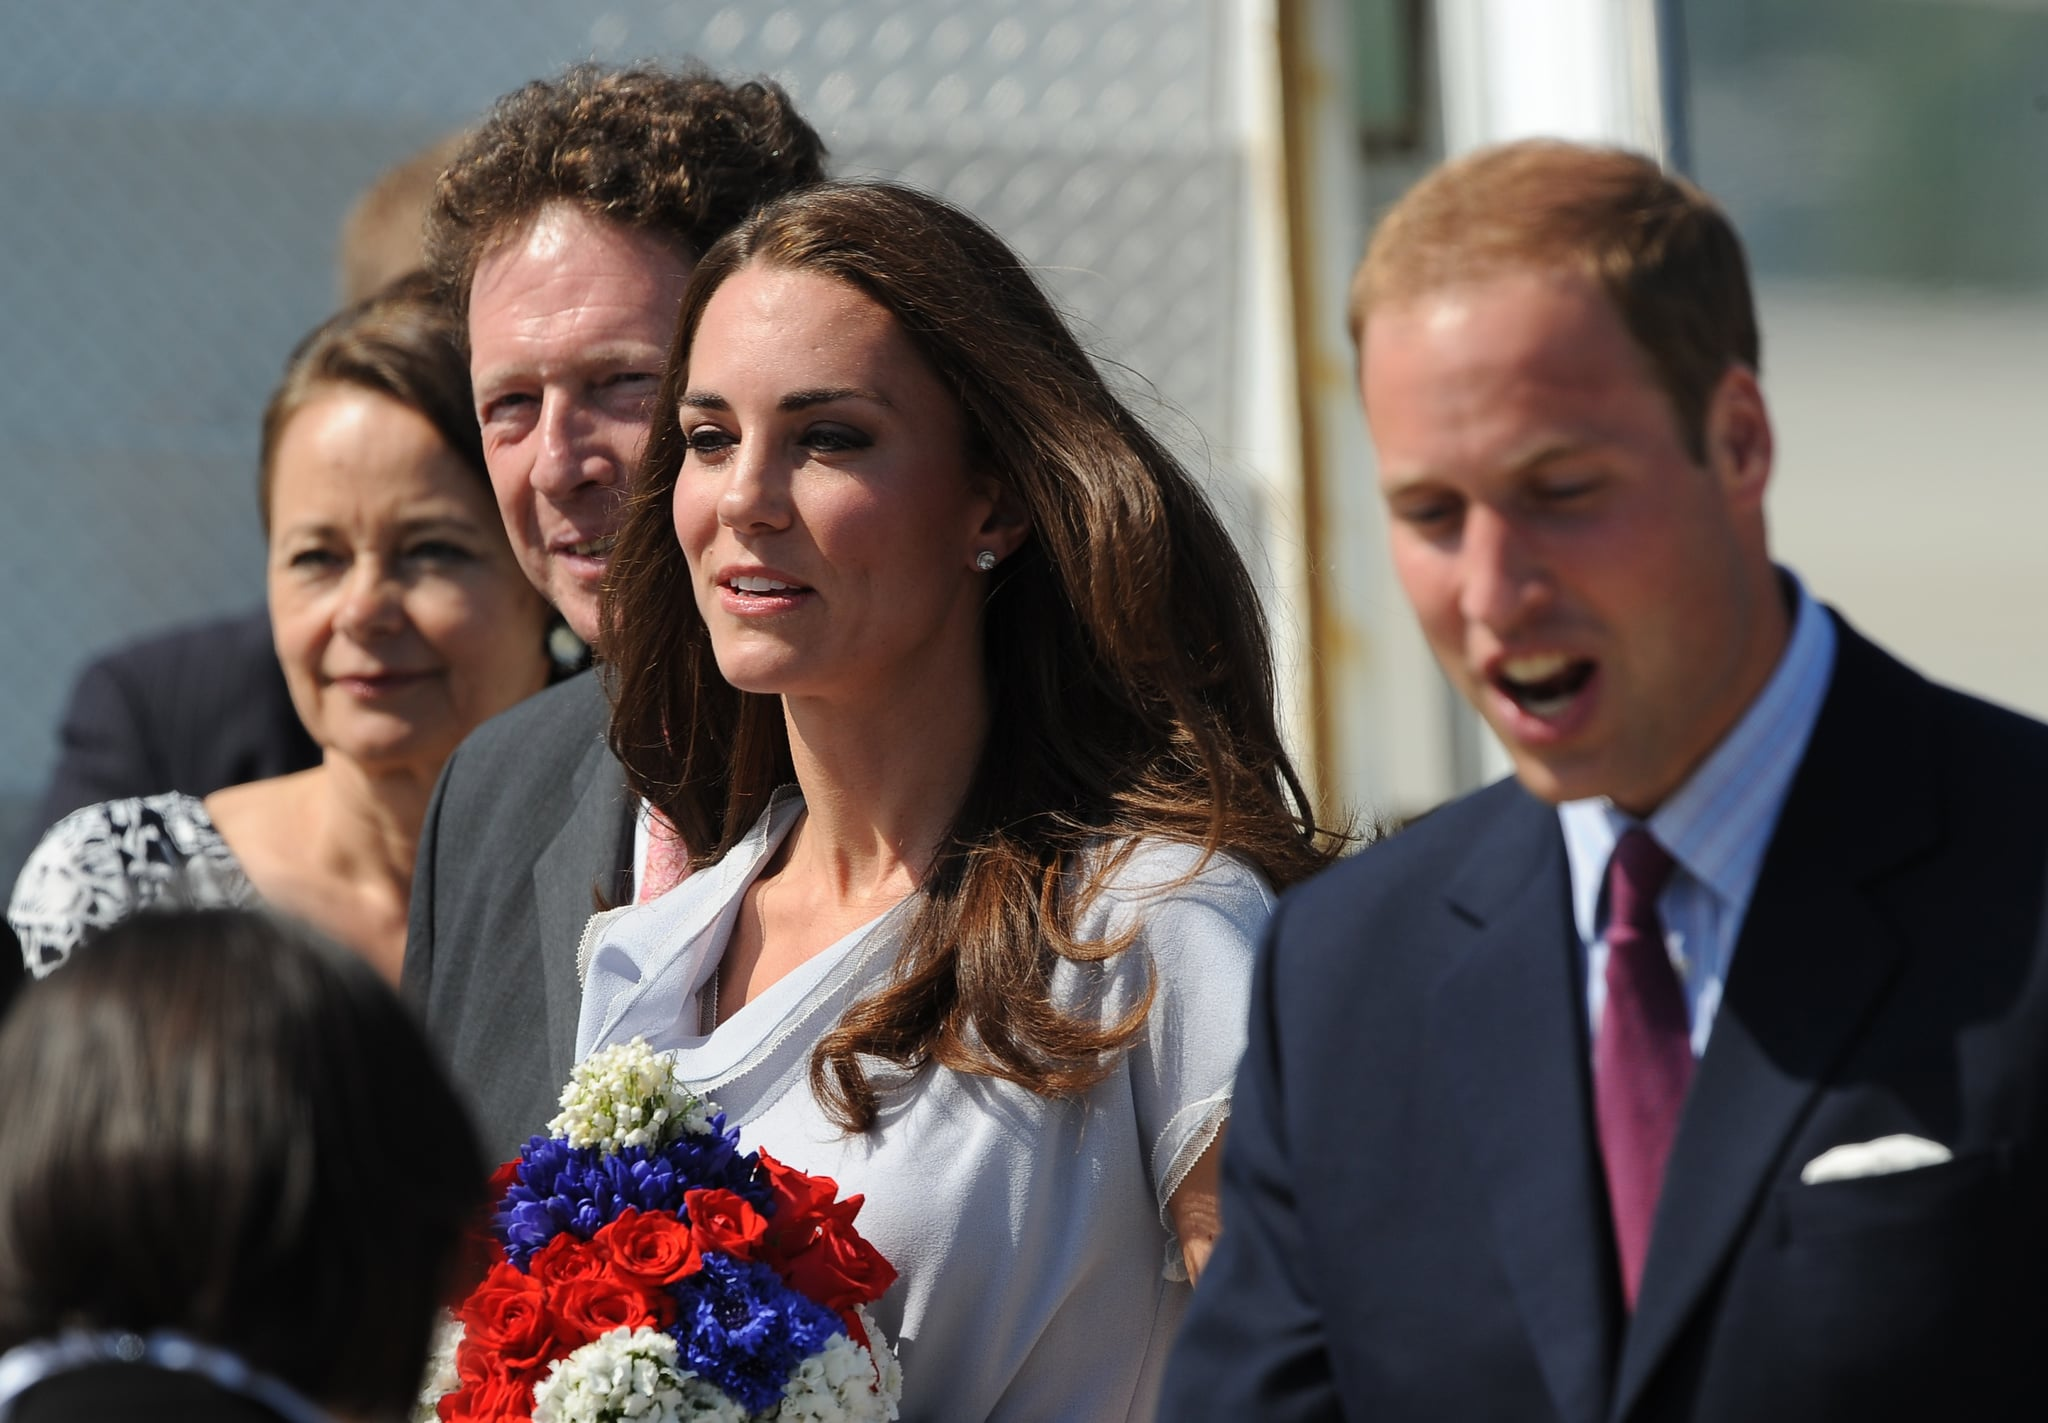 Kate Middleton and Prince William were welcomed by dignitaries.